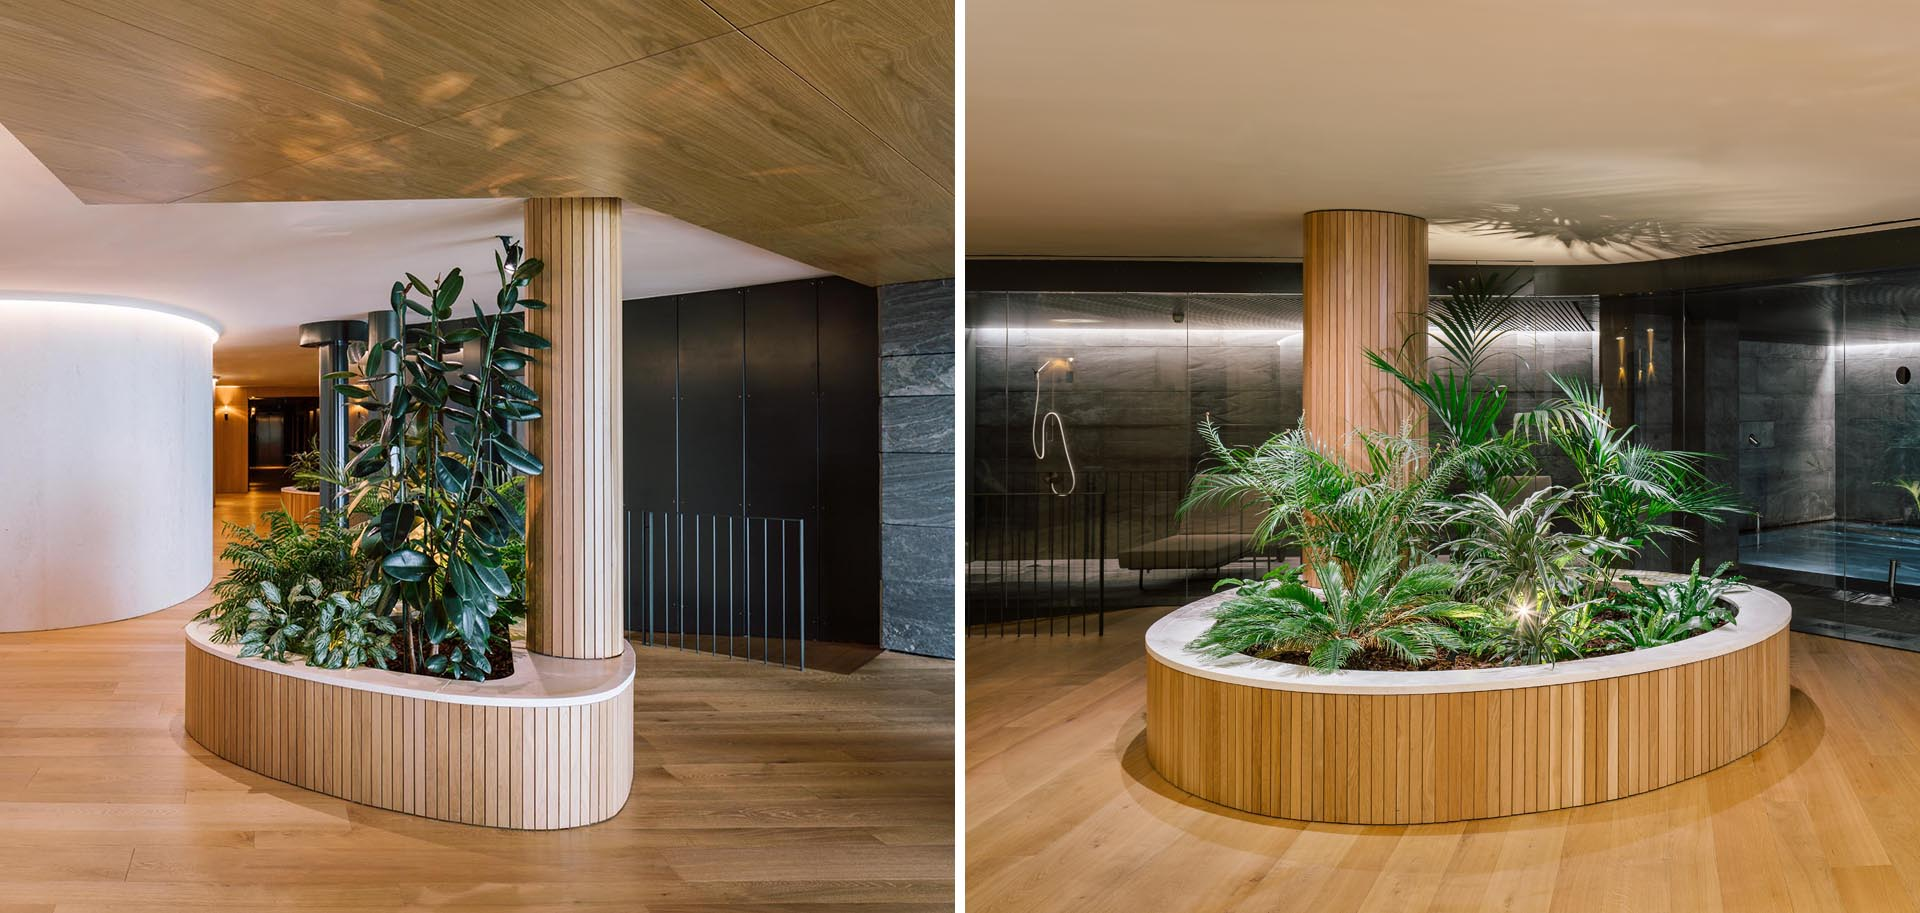 The columns in this spa have been wrapped in wood slats, softening the look of them, and helping them become a part of the built-in planters.